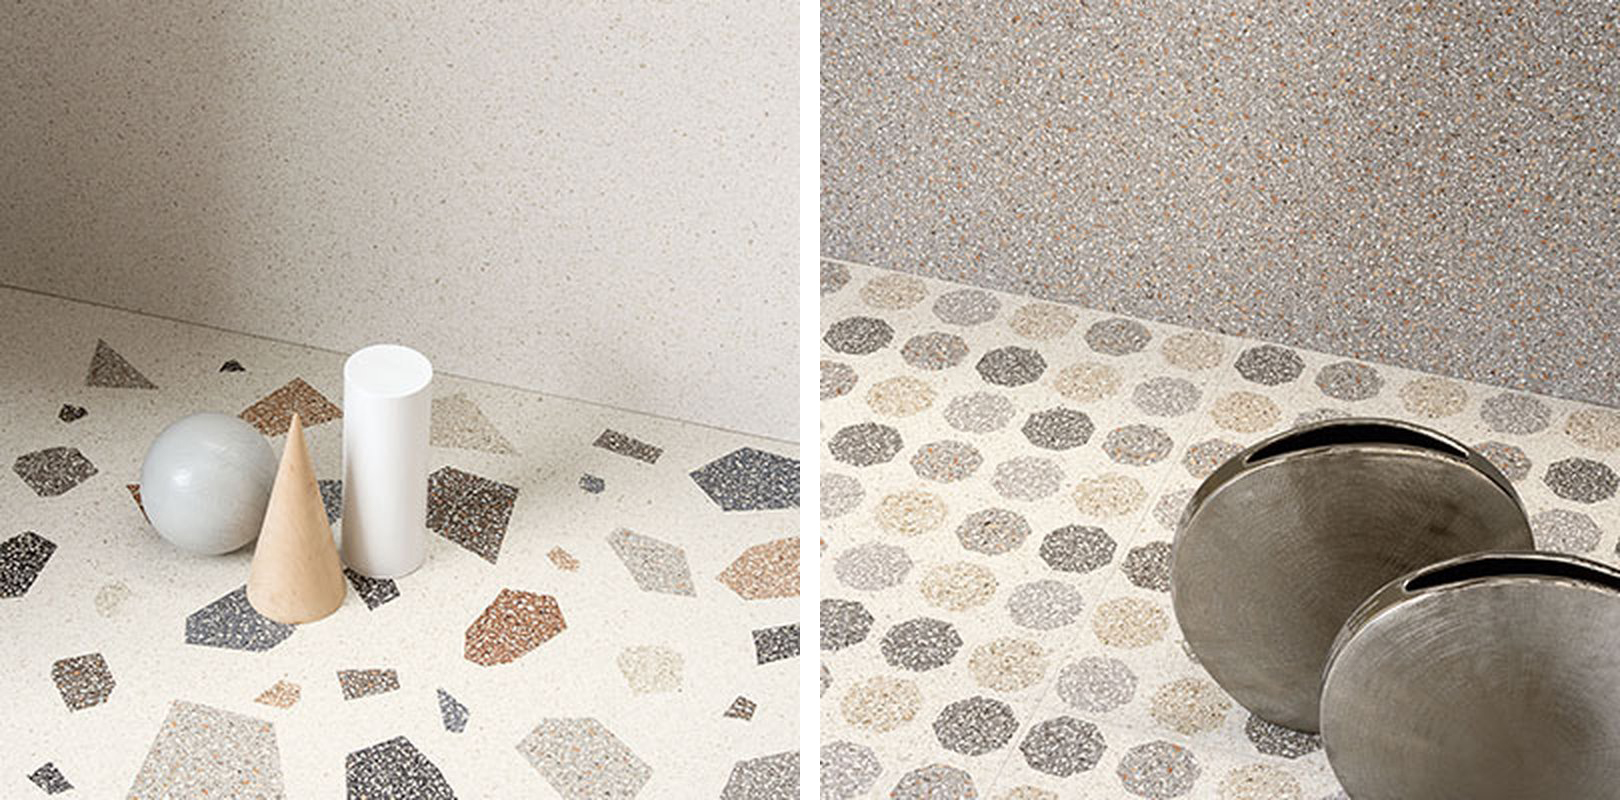 Example of terrazzo at Cersaie 2018.